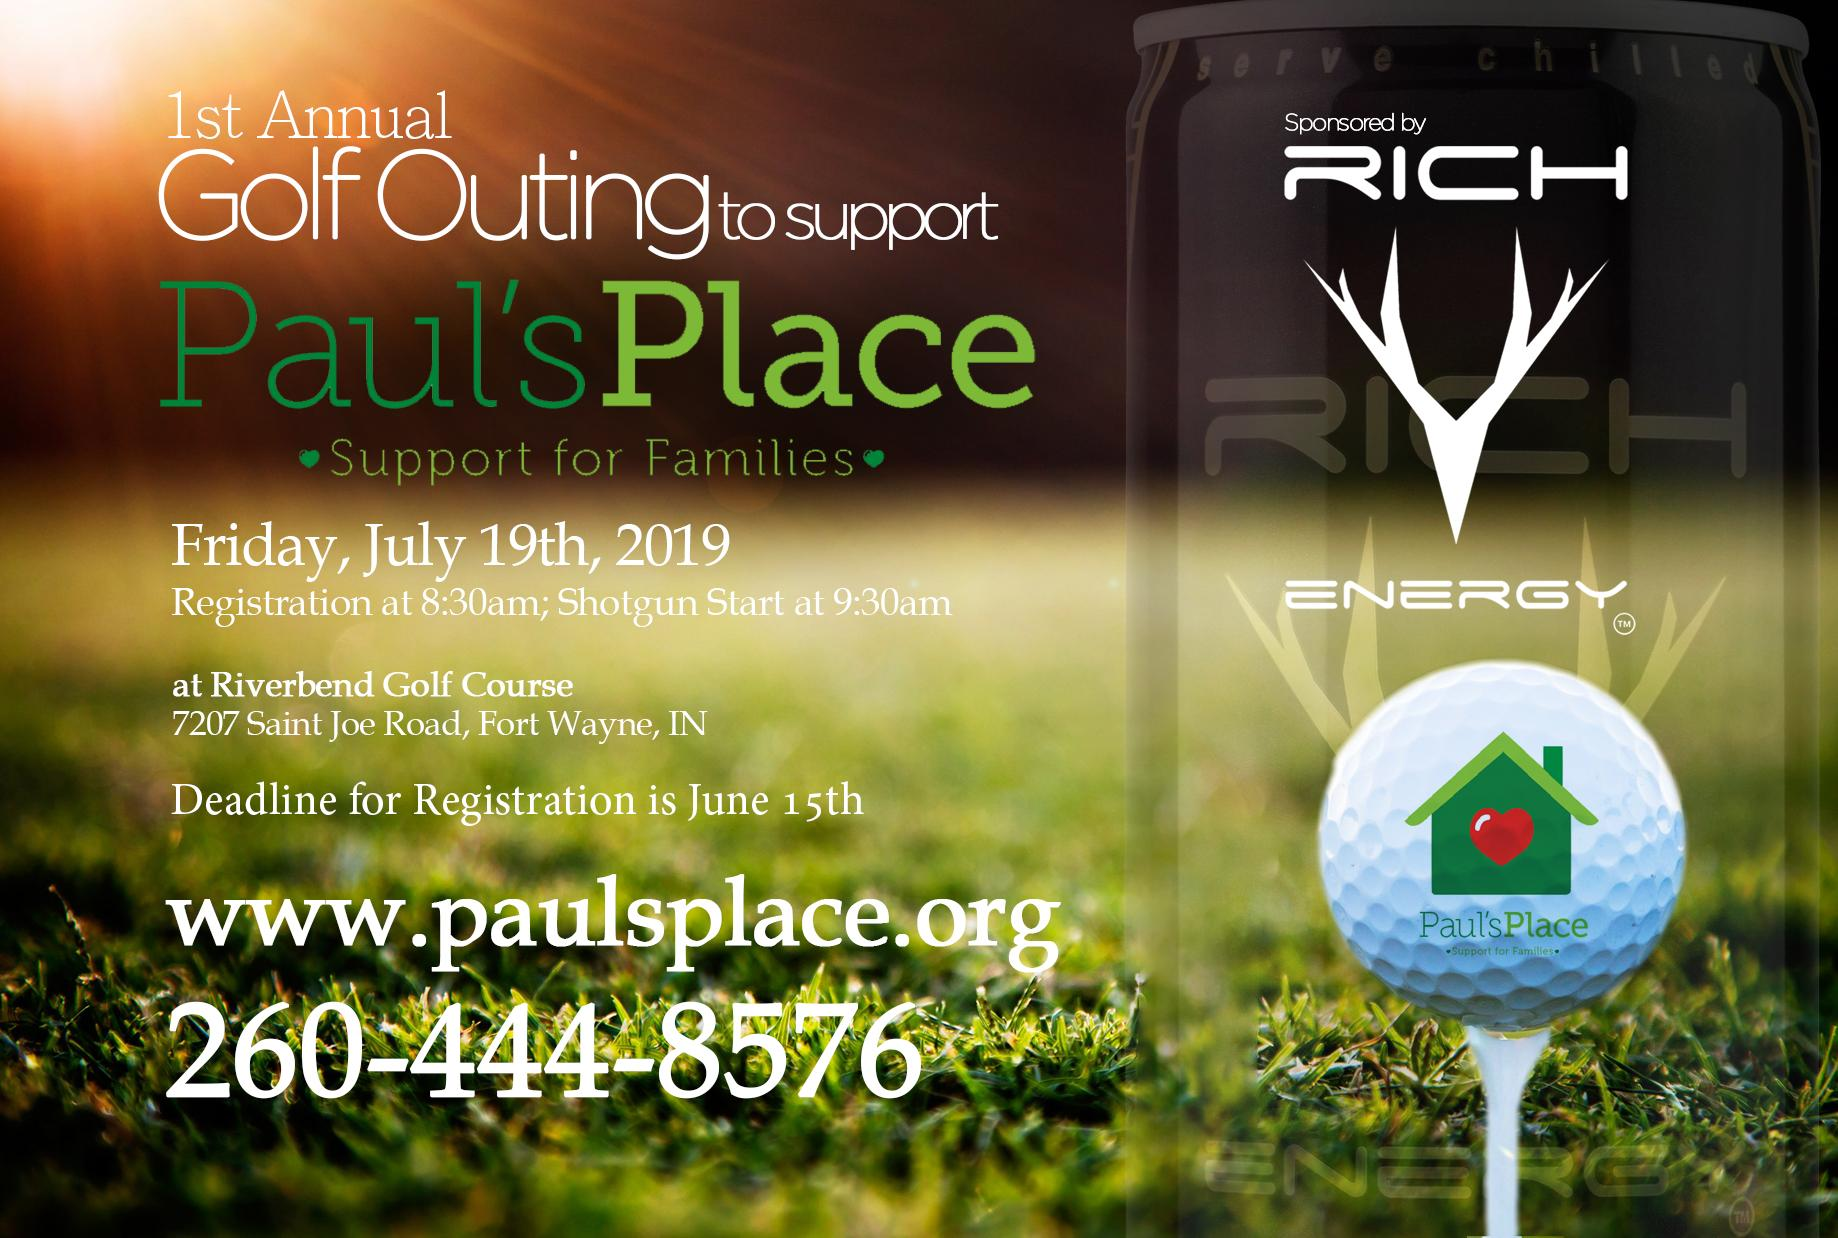 Paul's Place 1st Annual Golf Outing